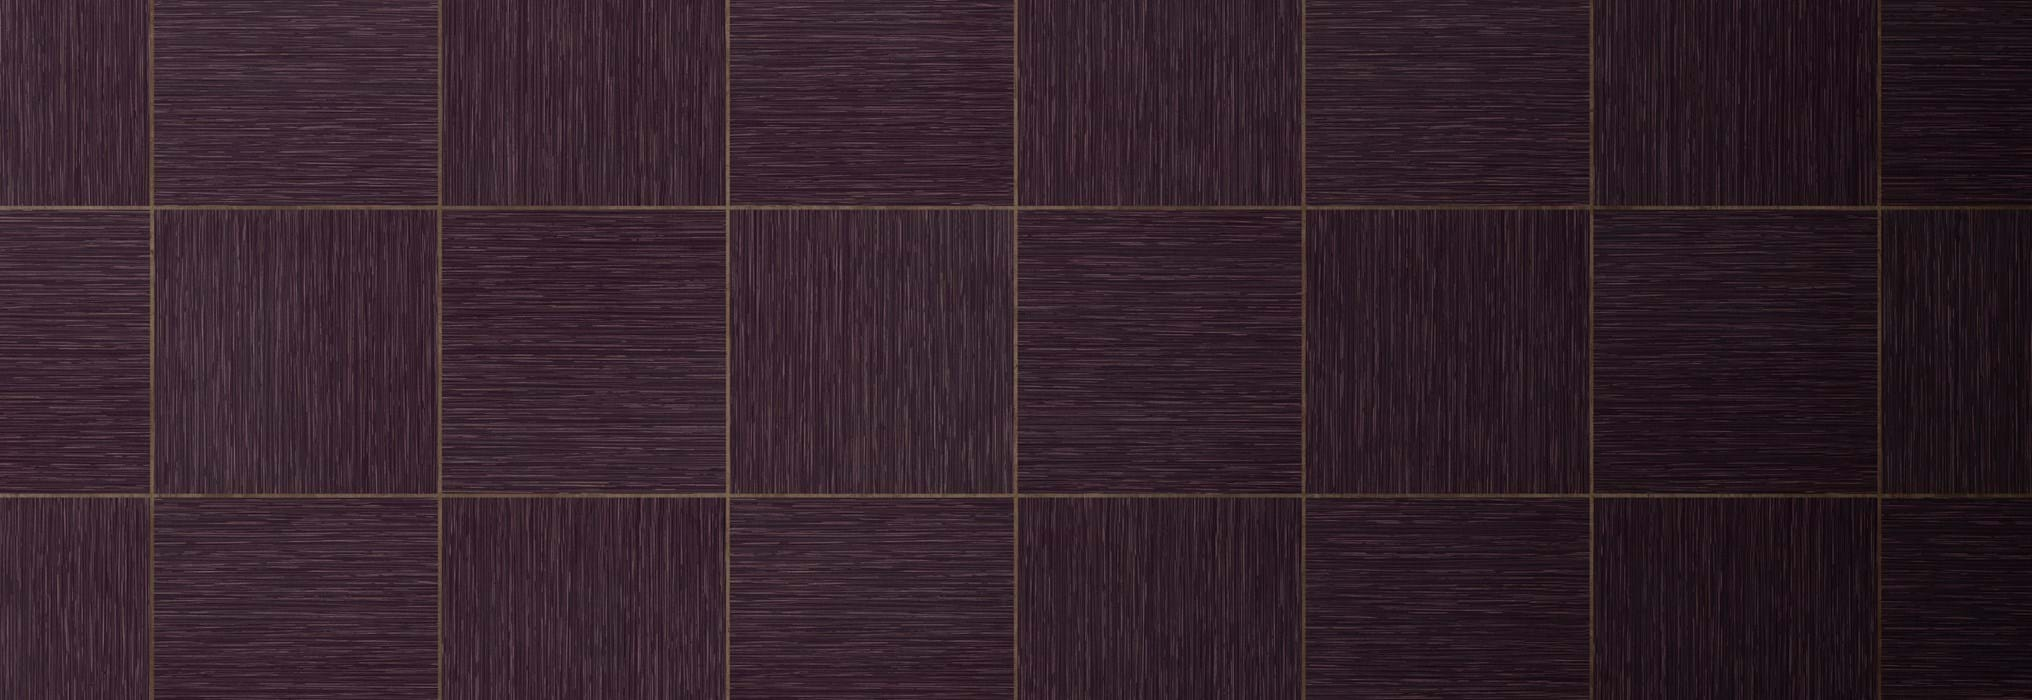 Amtico International: Linear Metallic Jewel - AM5ALA29